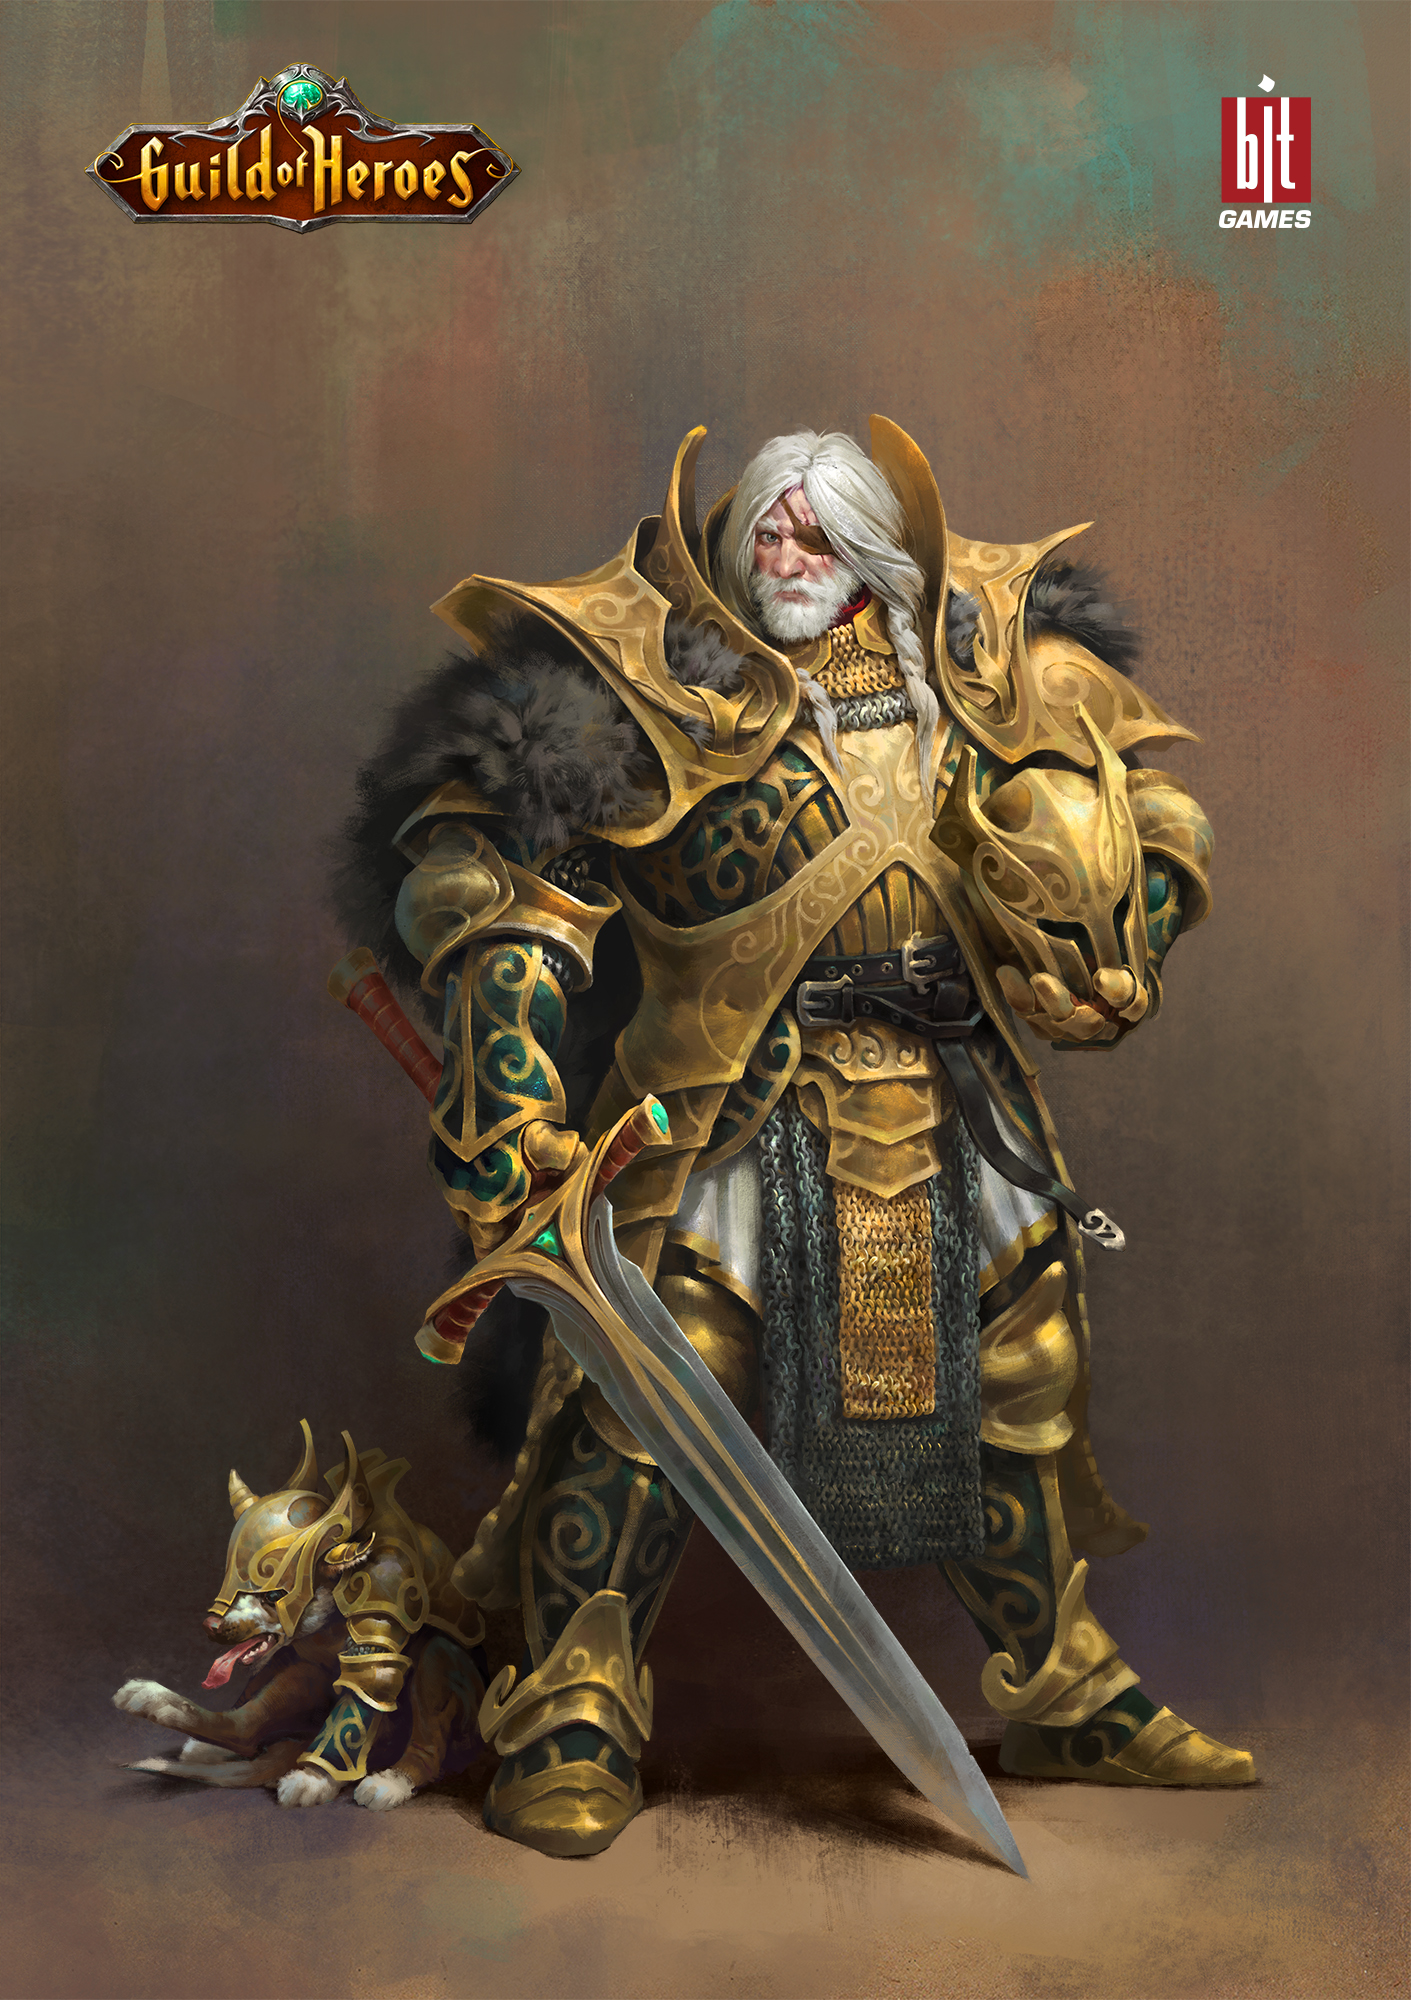 Guild general Ivanych and his war dog Polkan